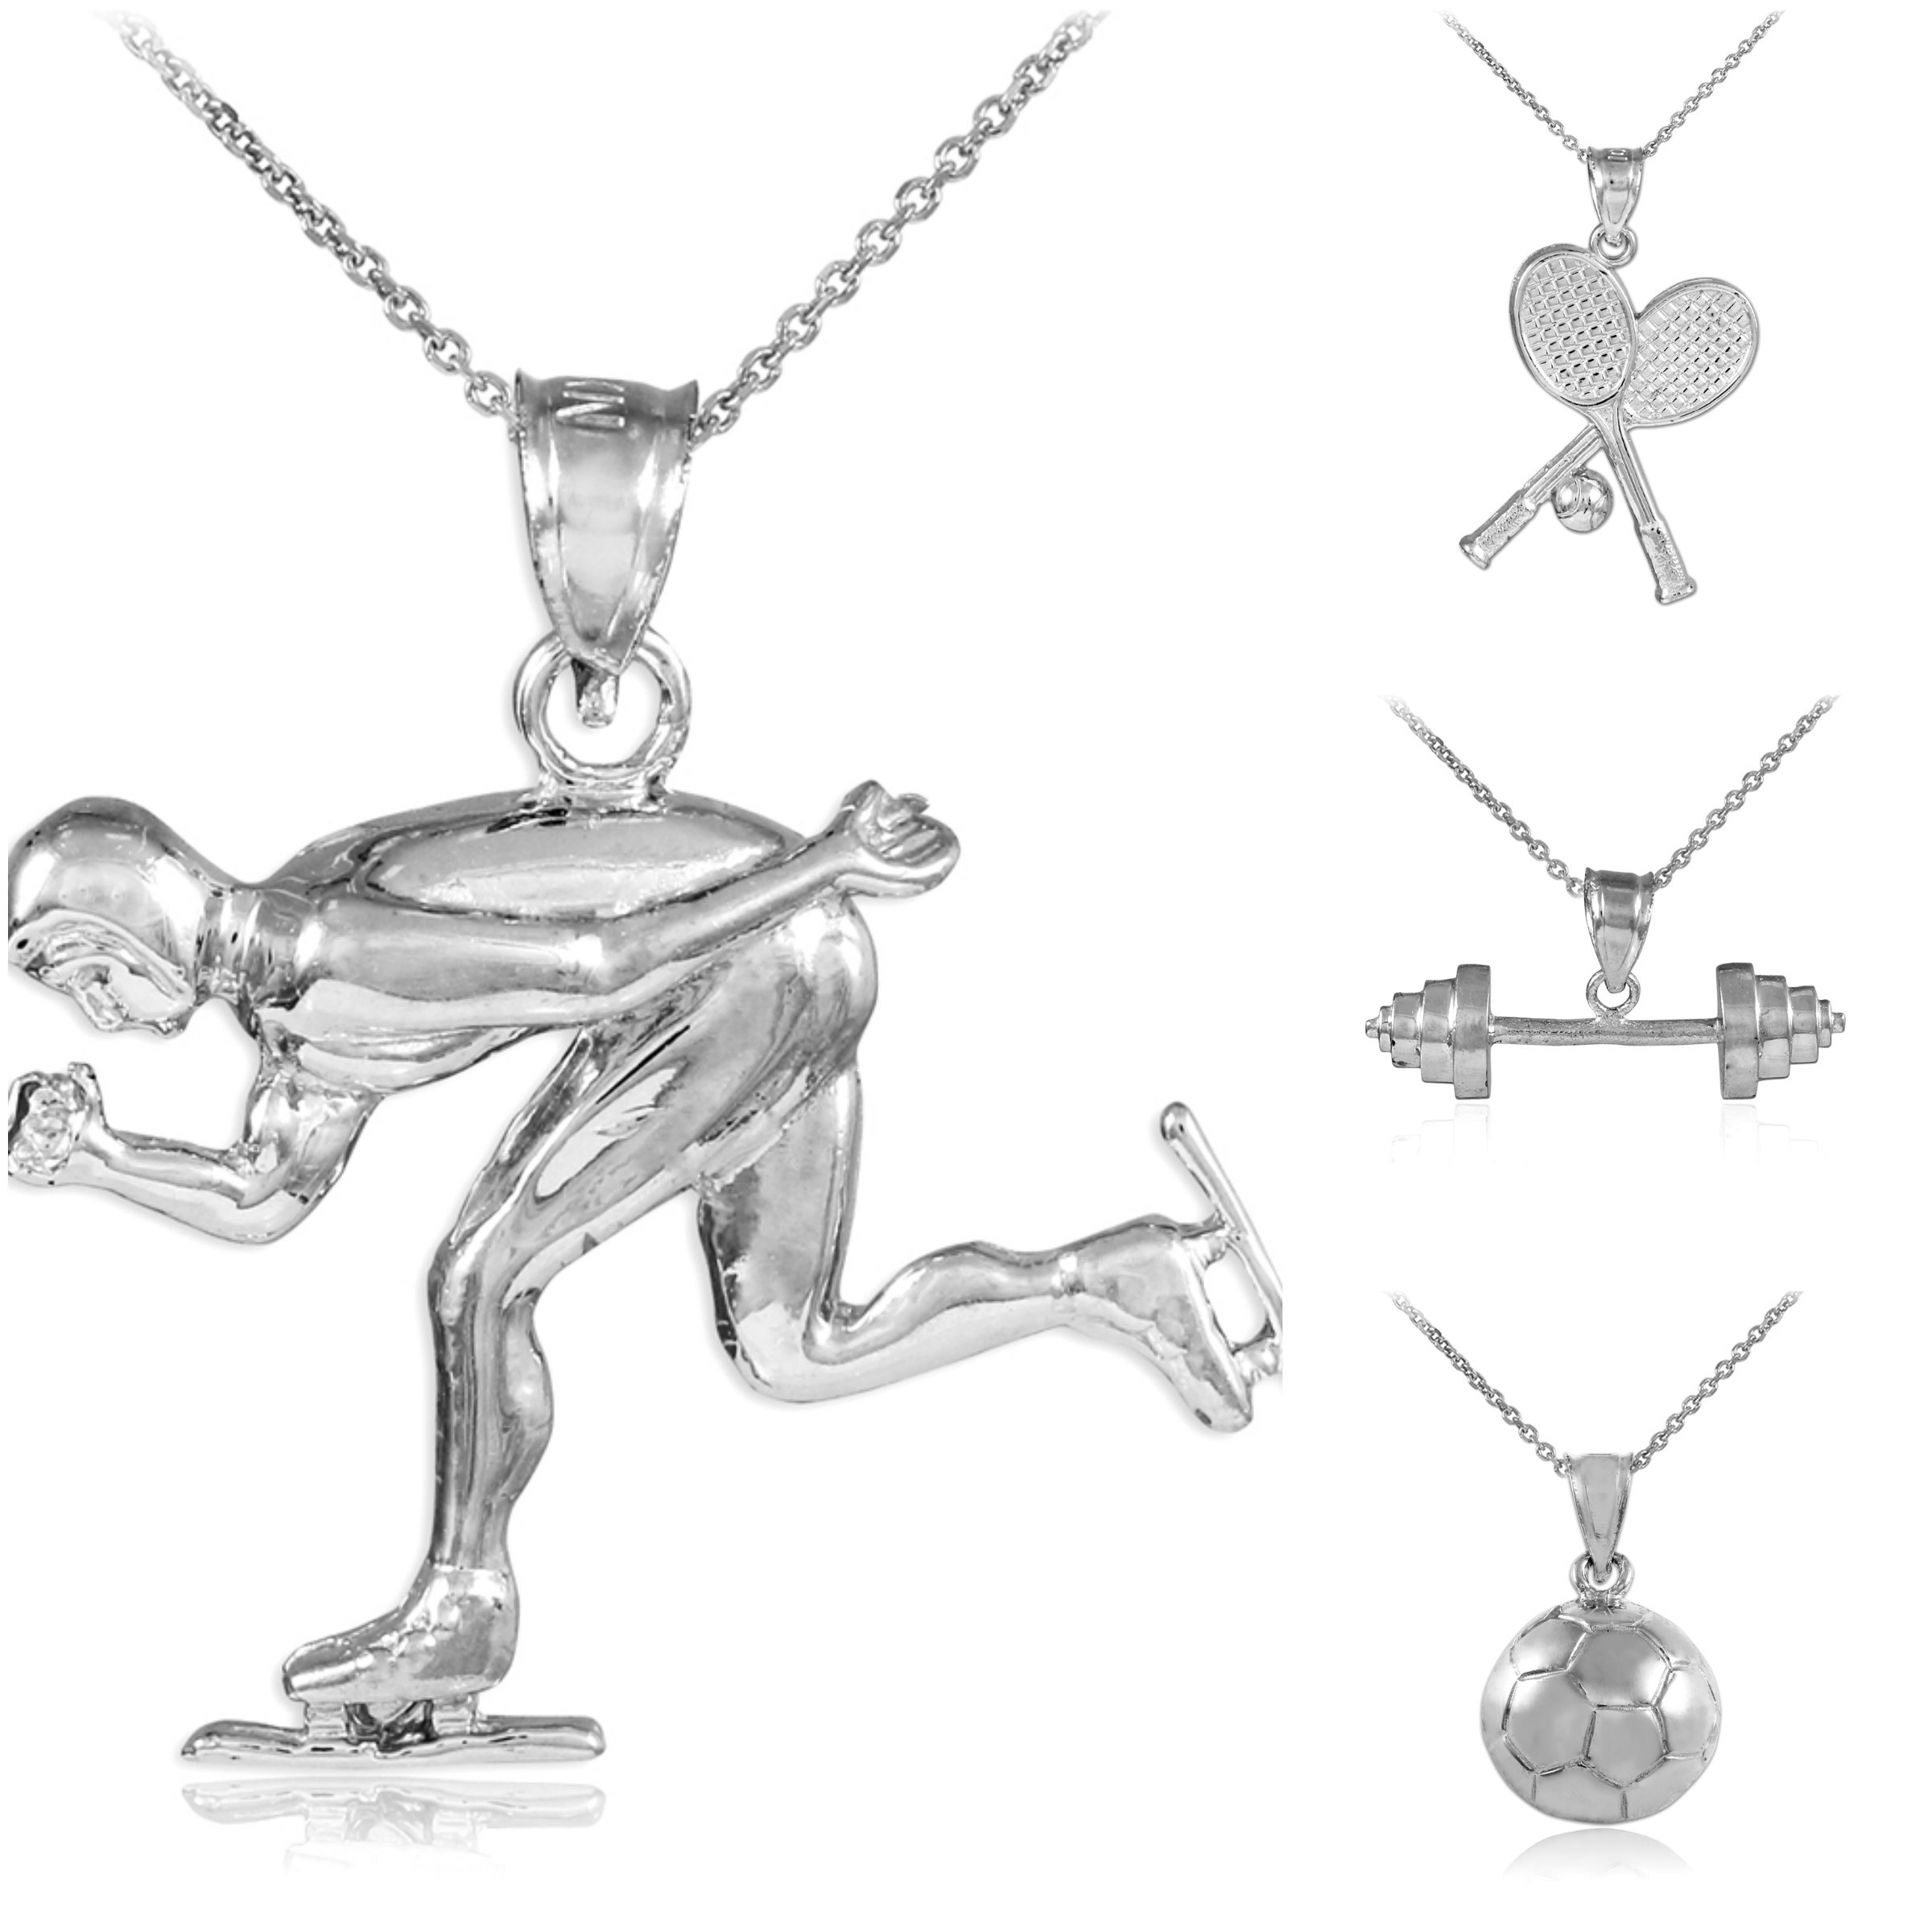 pitcher pendant ksvhs necklace mens script silver baseball fancy jewellery theme